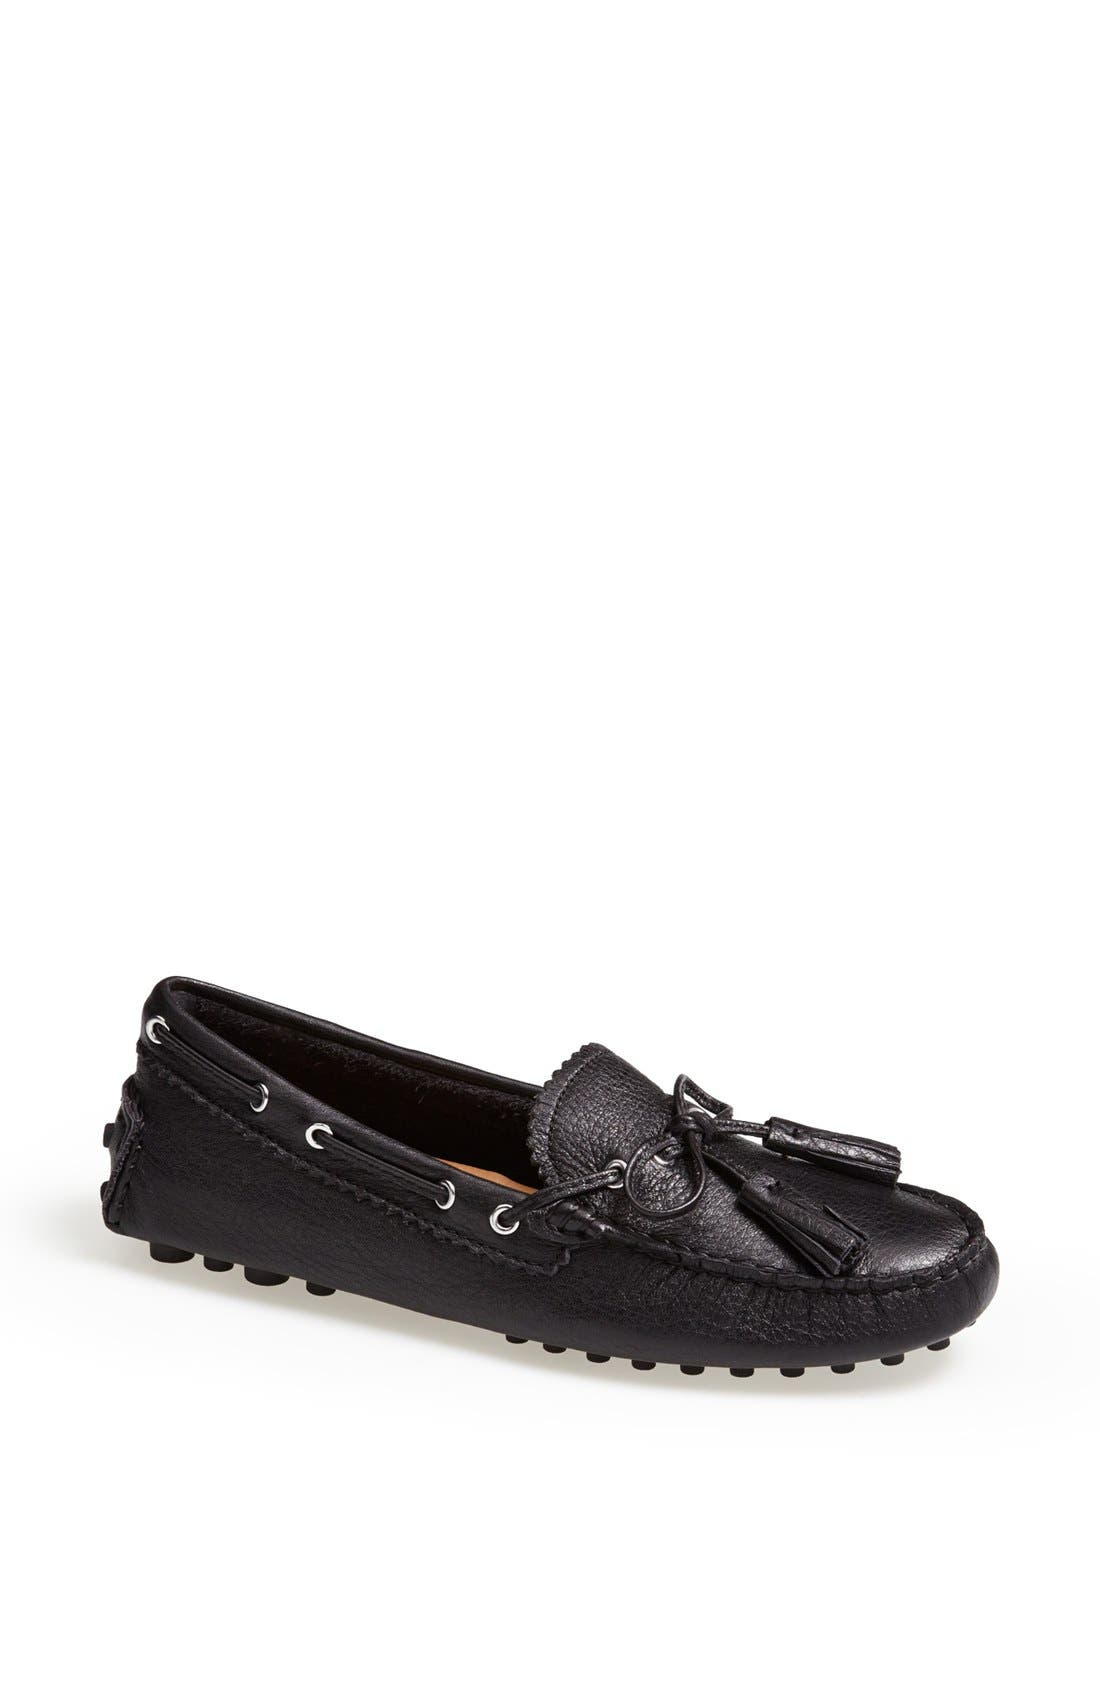 COACH 'Nadia' Suede Driving Loafer